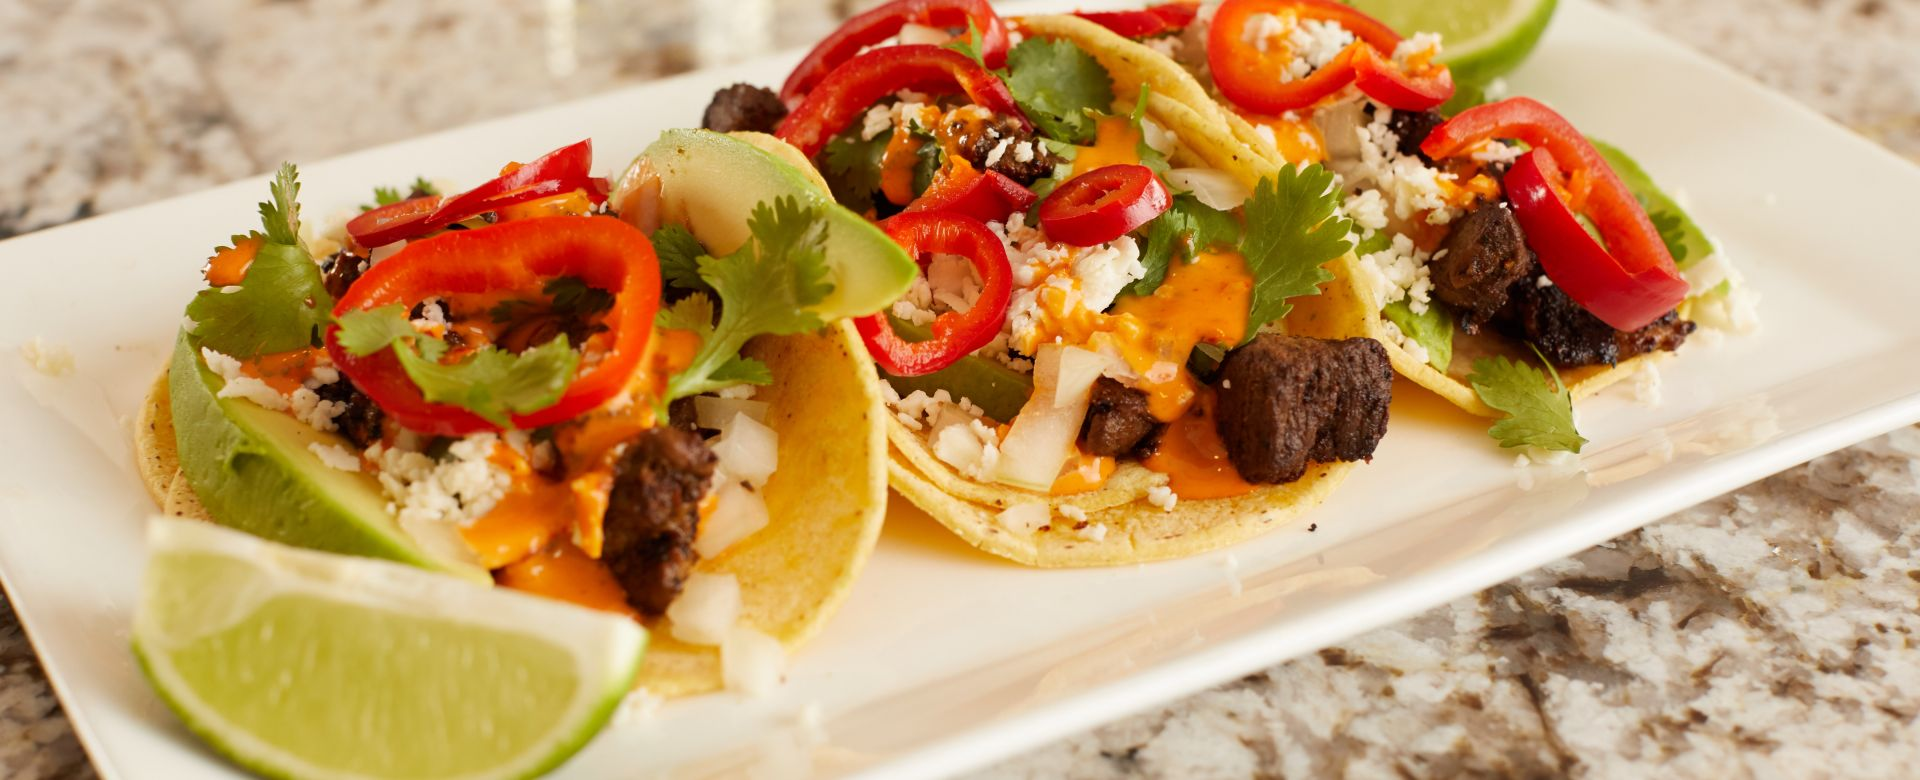 Soft shell tacos with avocado, lime and peppers.